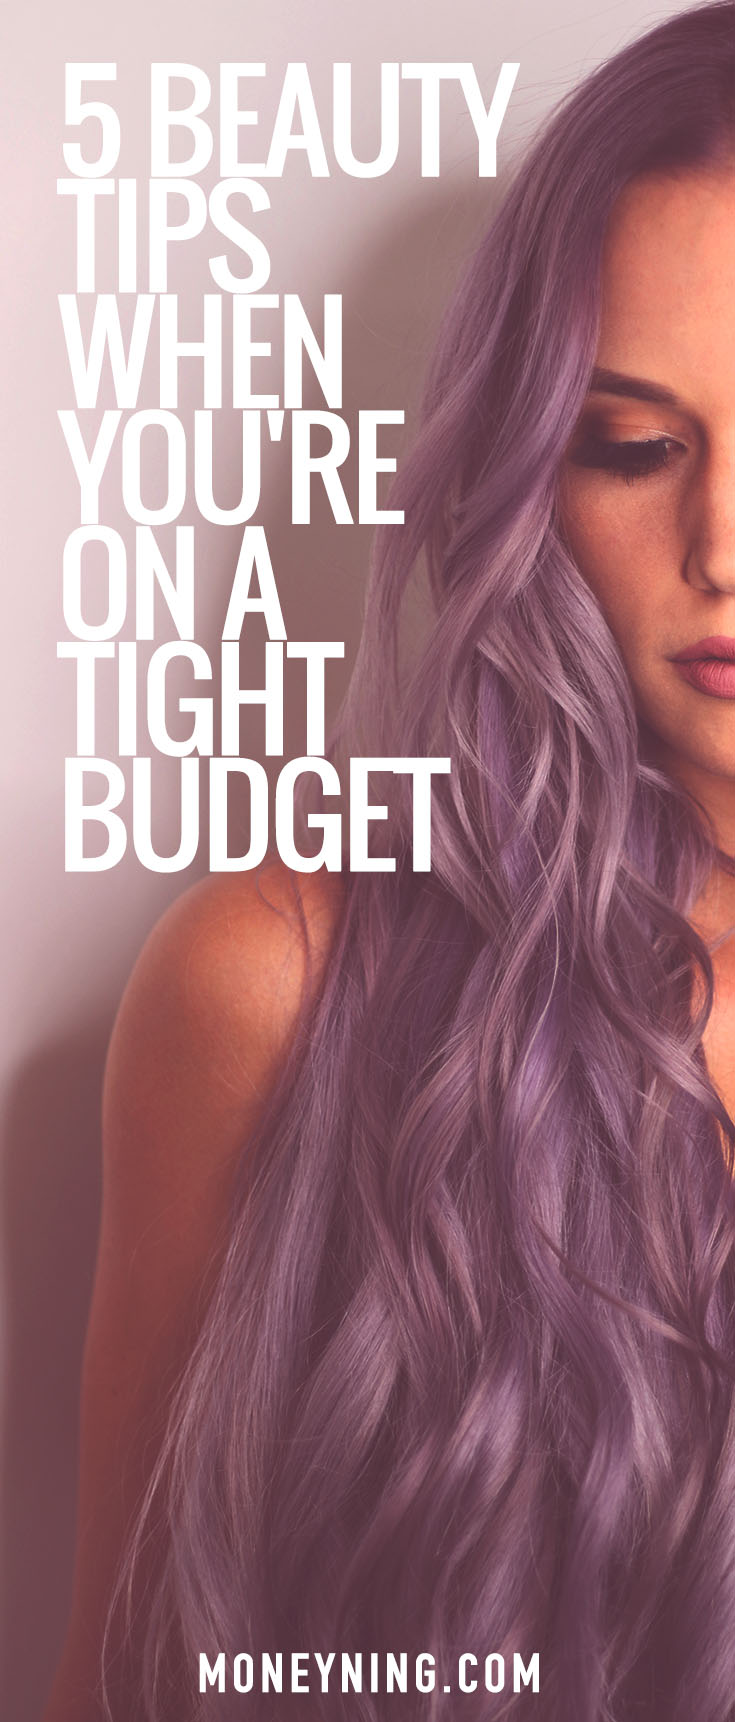 beauty tips on a tight budget